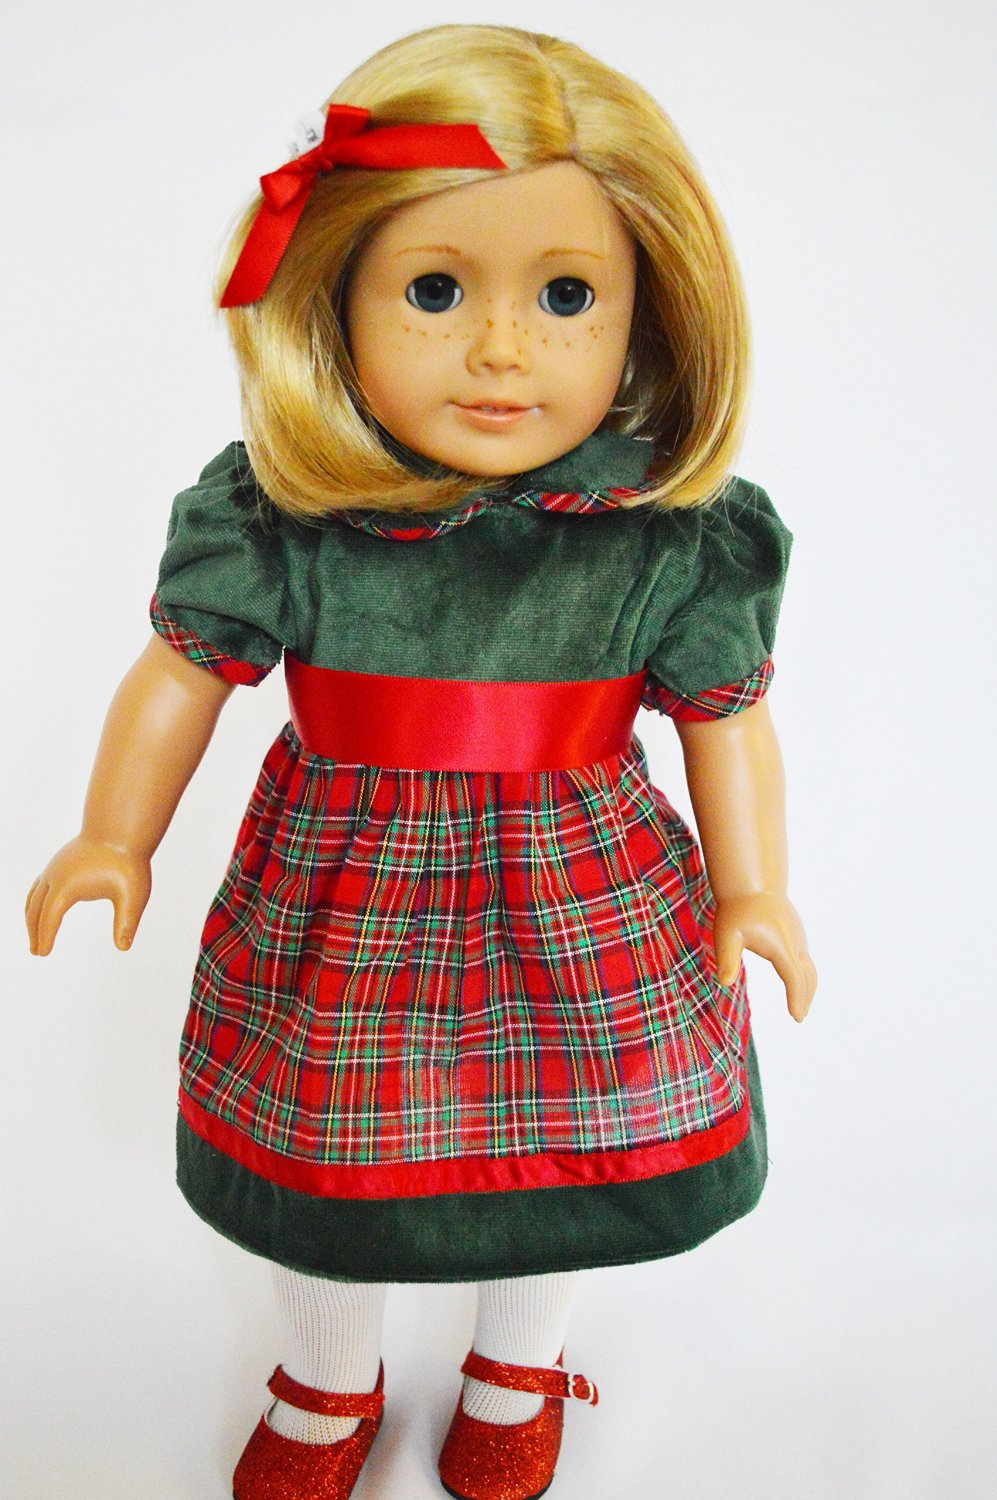 55b9c573a2 get quotations green and red holiday plaid christmas dress for 18 inch  american girl dolls